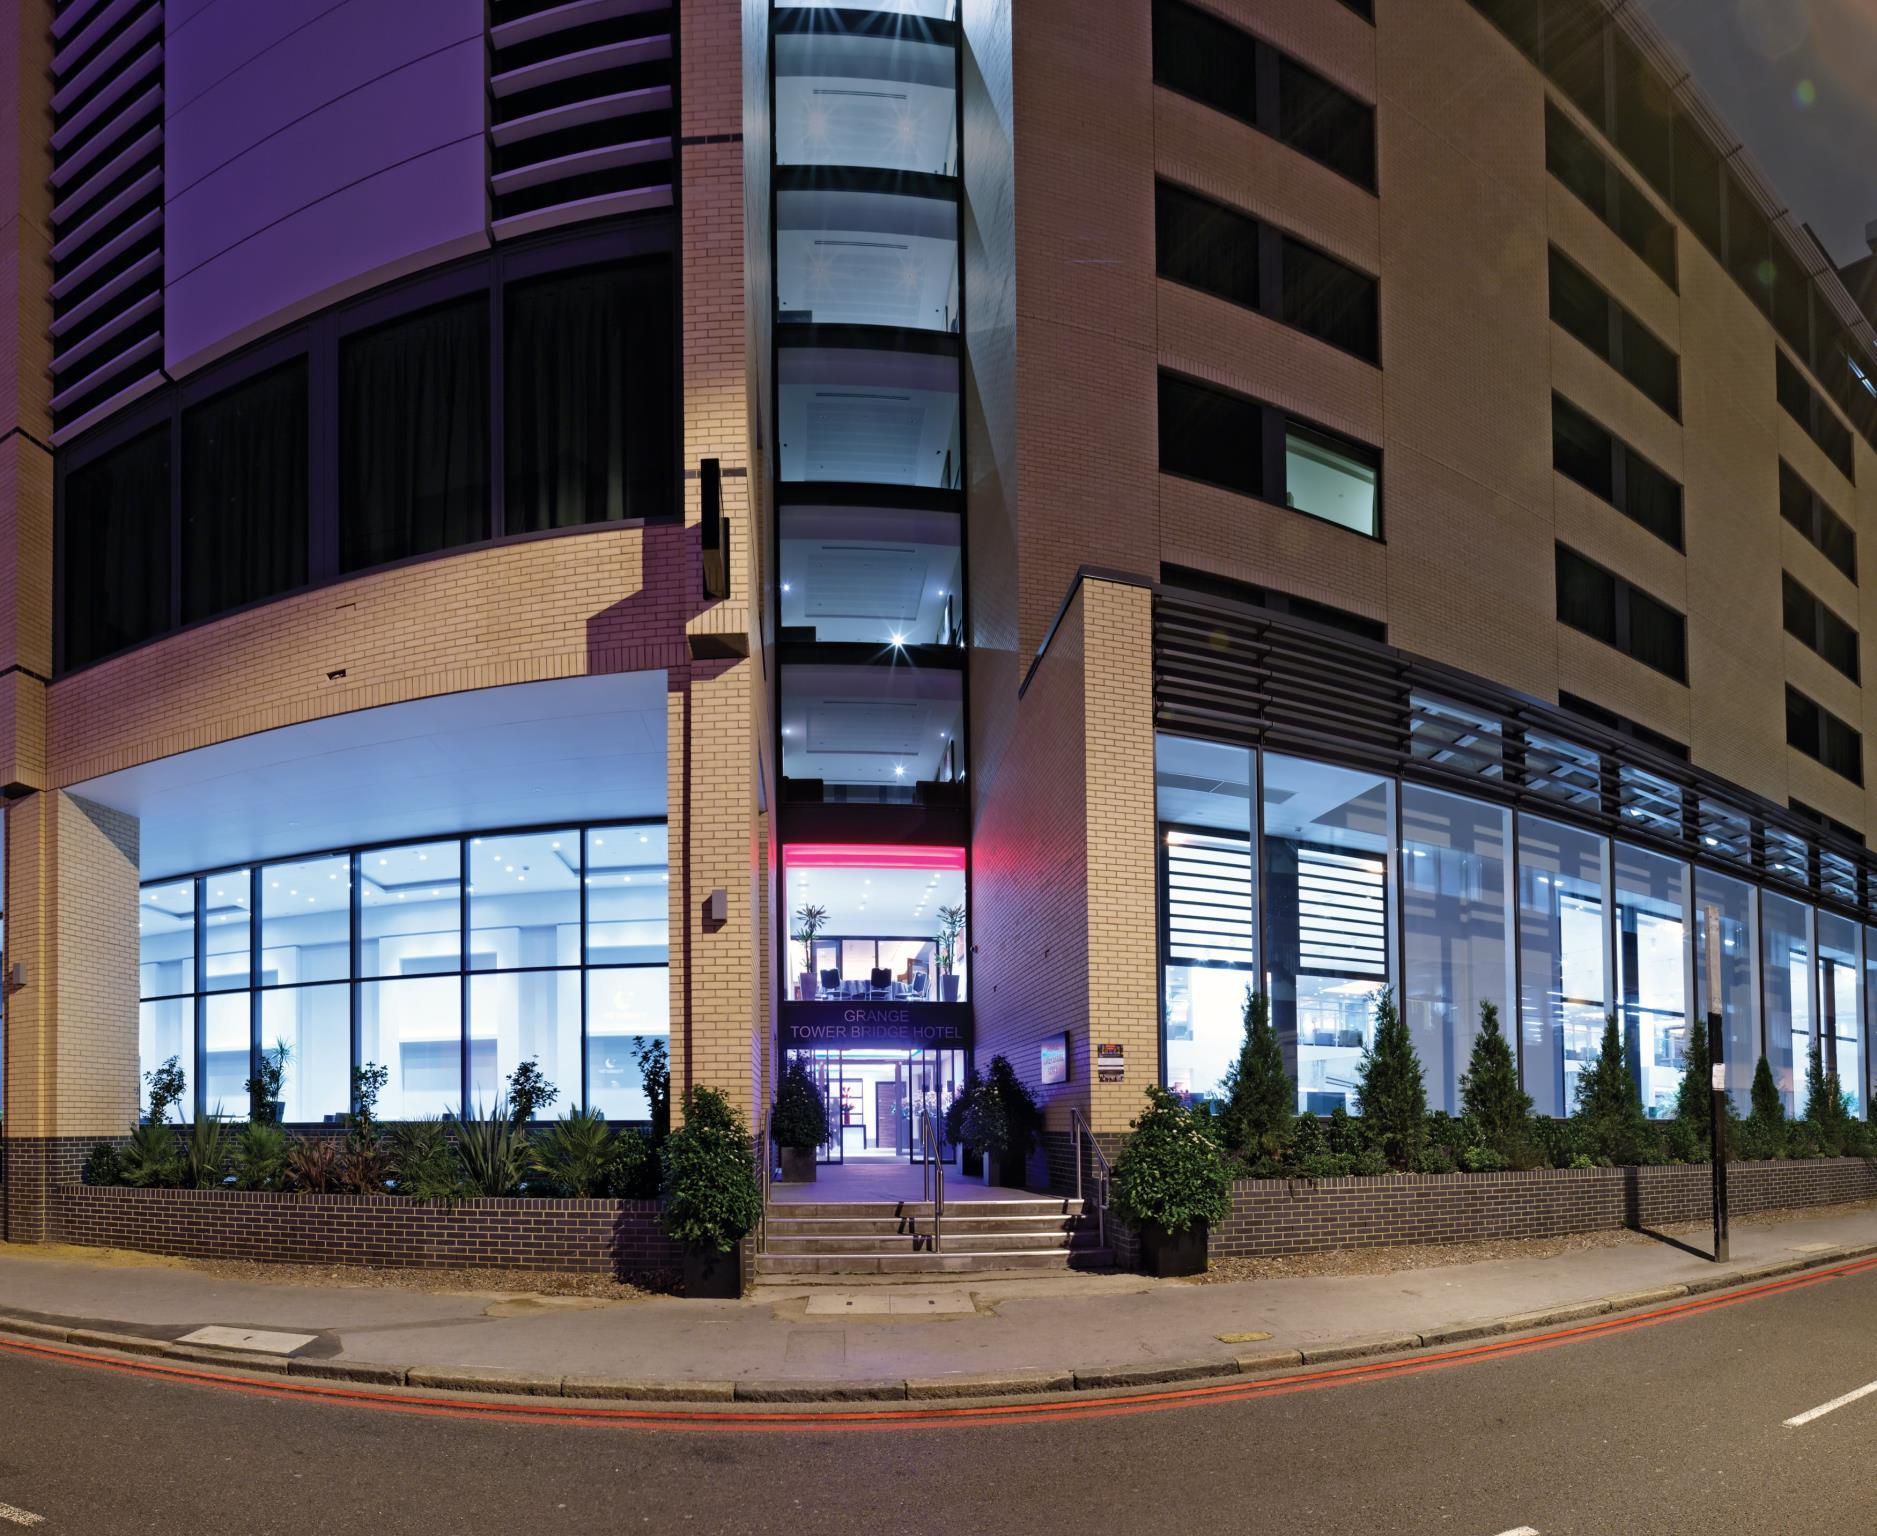 Leonardo Royal Hotel London Tower Bridge, London